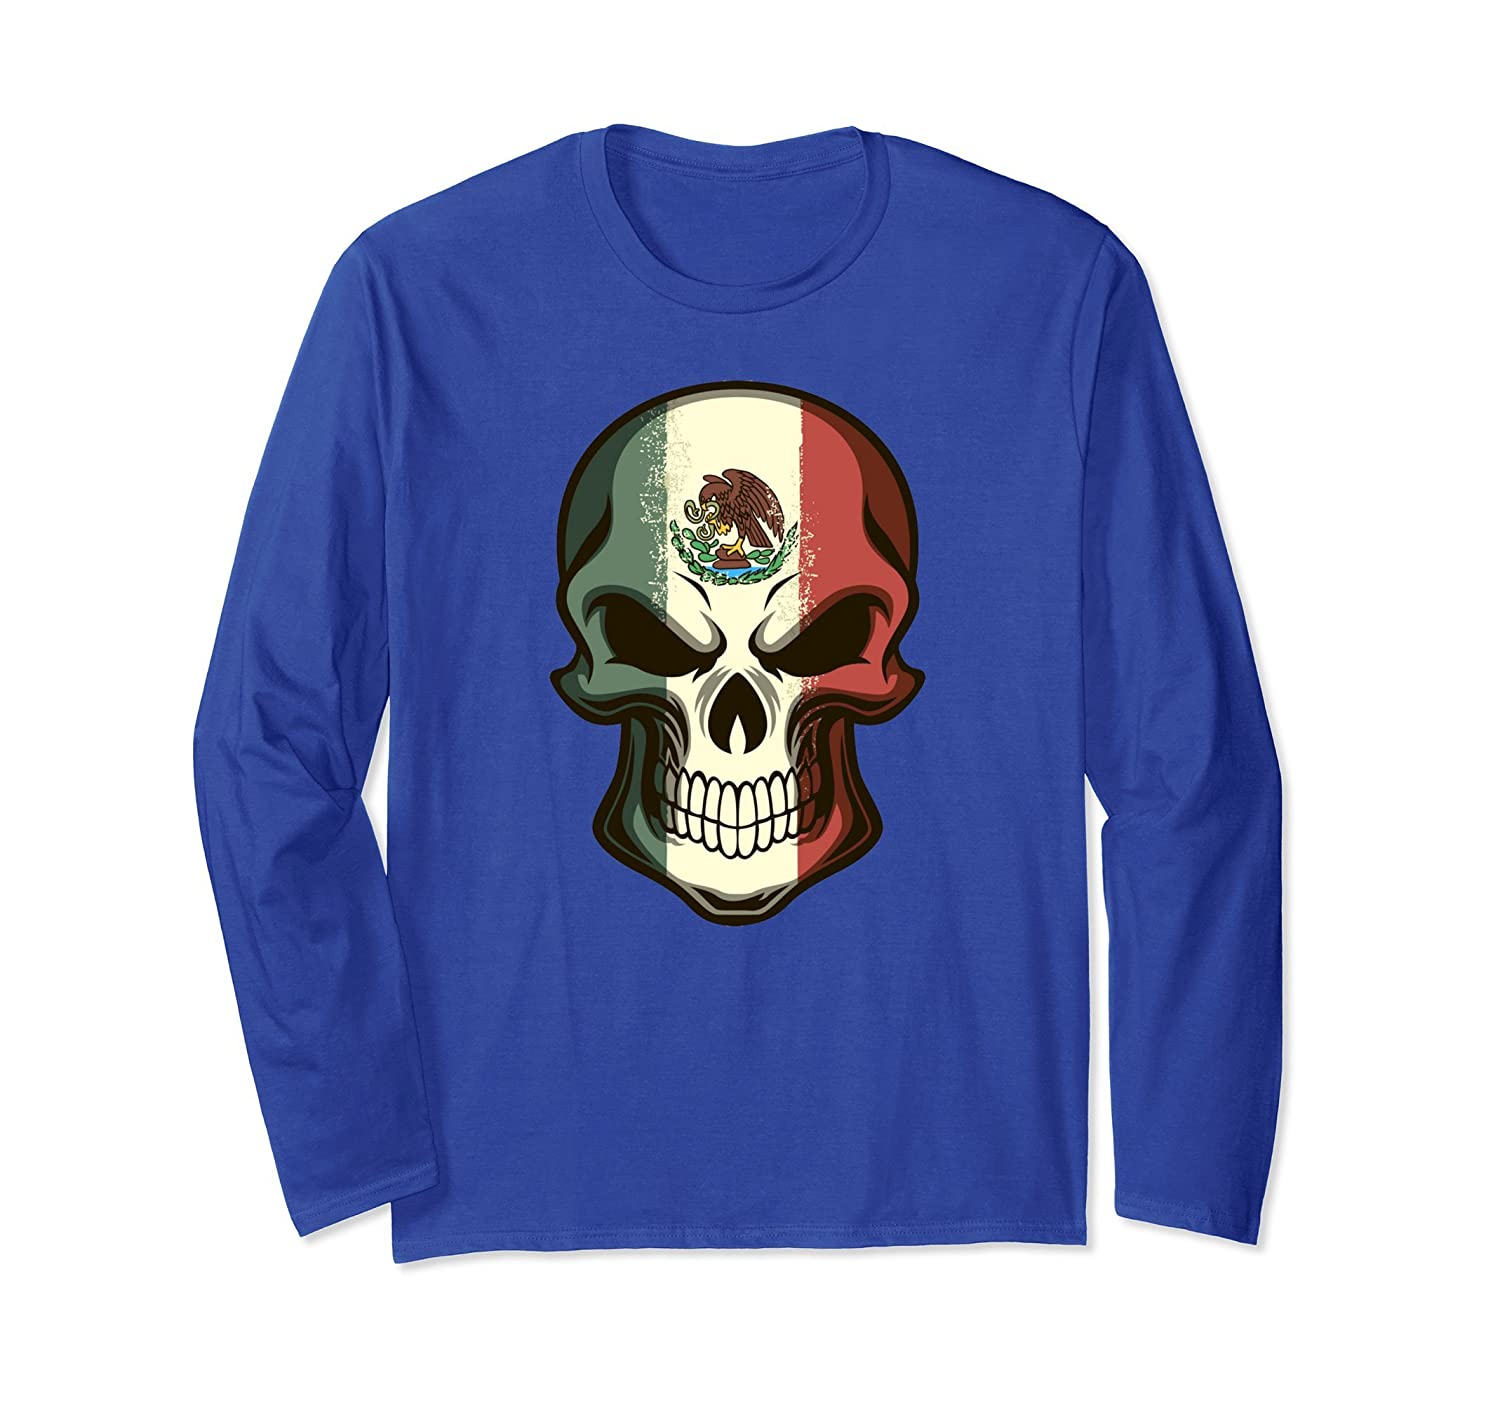 Awesome Mexico Shirts - Mexican Flag Skull Long Sleeve Tee-mt